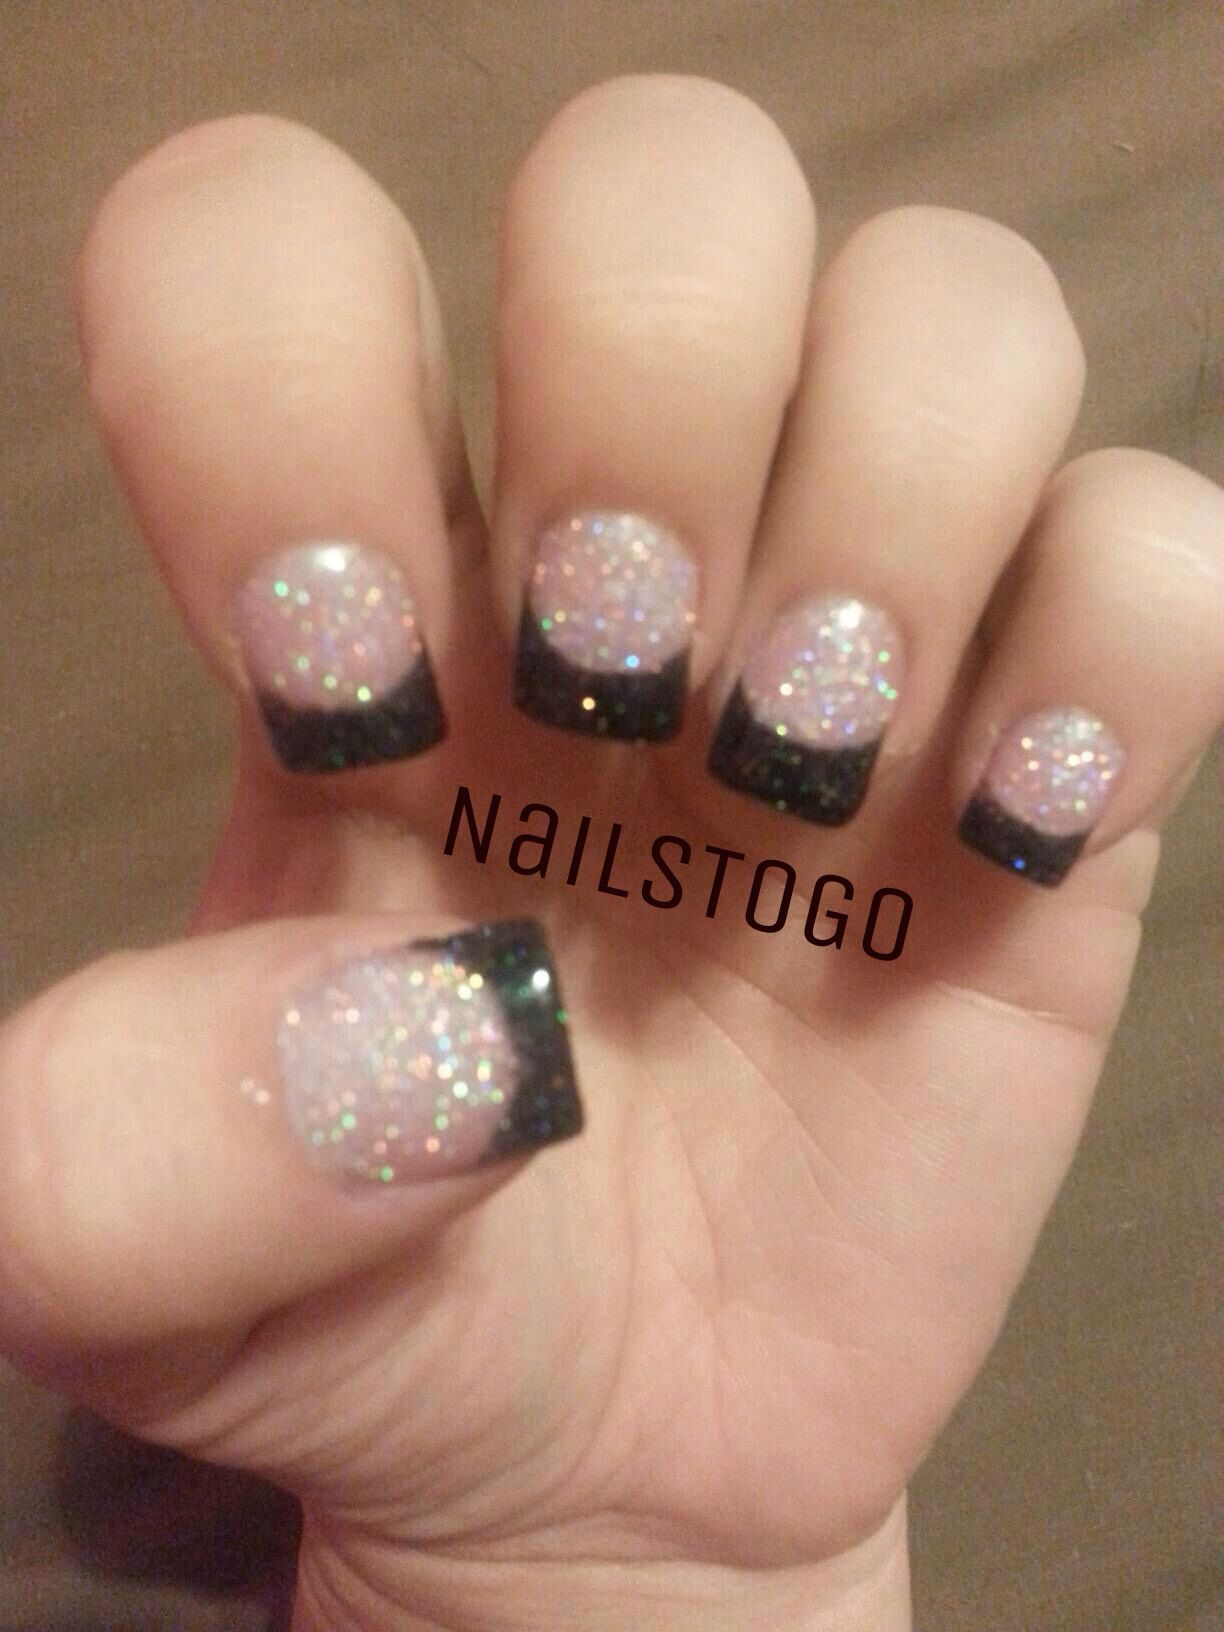 Reverse Pink And White Glitter Acrylic On Nailbed With Black Glitter Hologram On Tip Black Acrylic Nails Nails Nails To Go